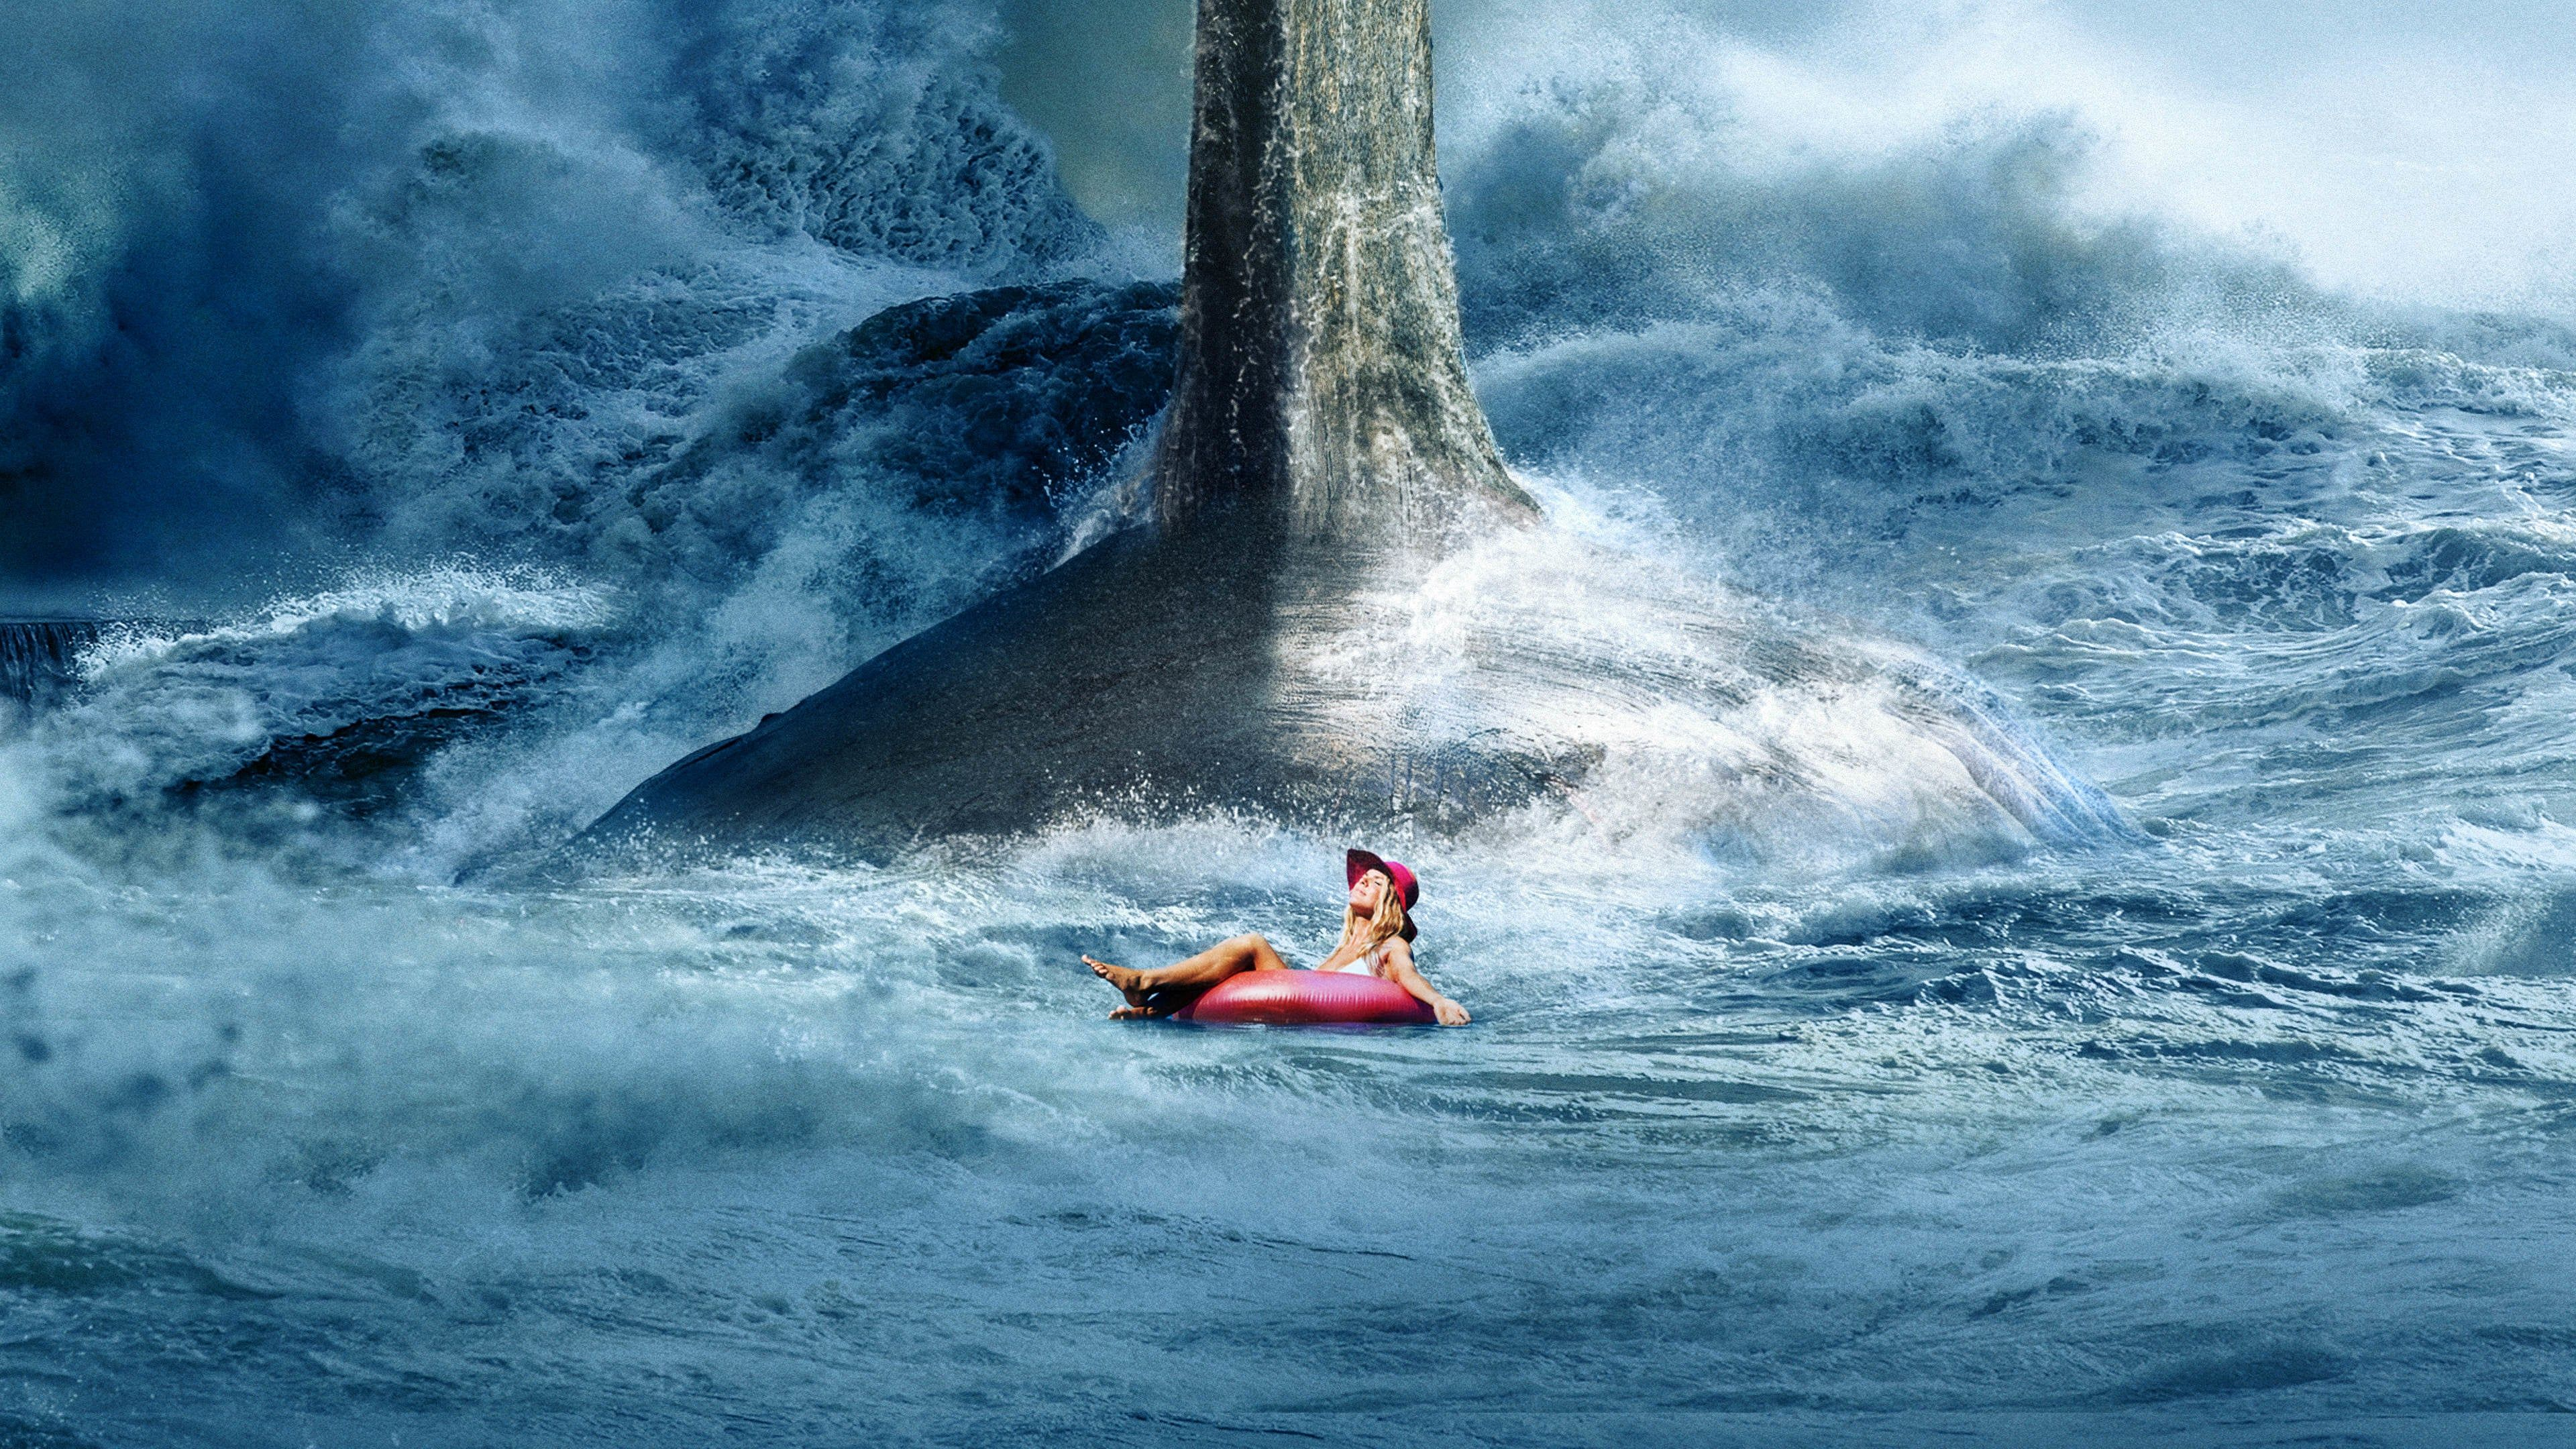 Watch The Meg 2018 Full Movie Online Free A Deep Sea Submersible Pilot Revisits His Past Fears In The Mariana Trench And Accidentally Unleashes